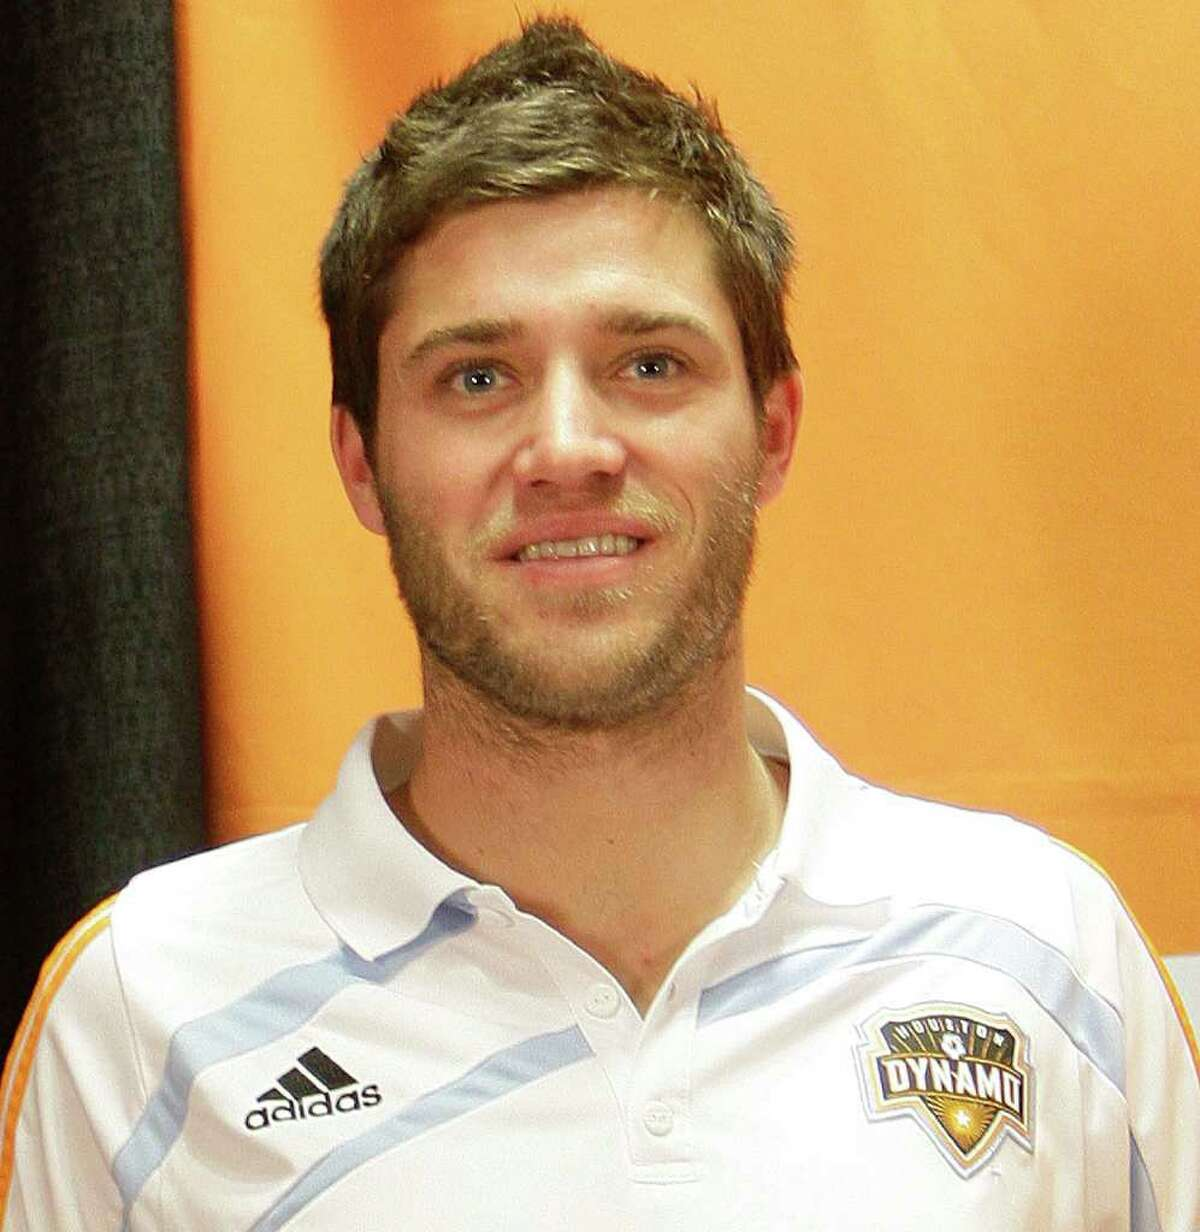 The Dynamo midfielder Colin Clark during a press conference announcing the signing of several players Friday, Dec. 17, 2010, in Houston.